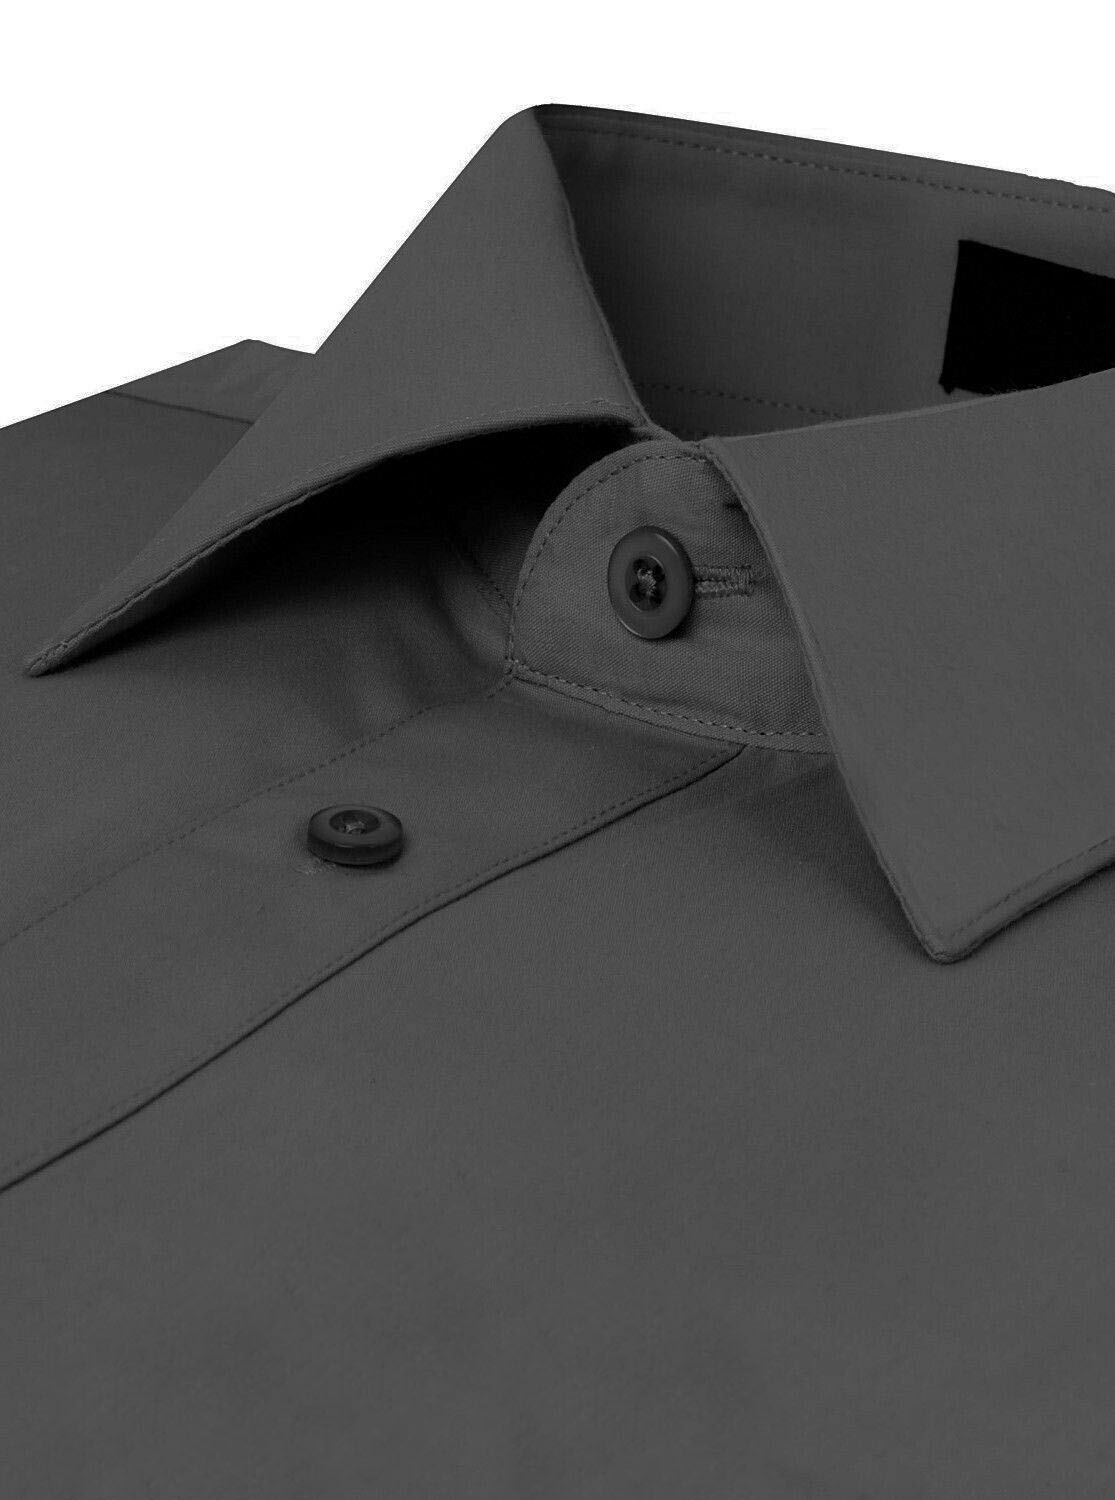 Omega-Italy-Men-039-s-Premium-Slim-Fit-Button-Up-Long-Sleeve-Solid-Color-Dress-Shirt thumbnail 20